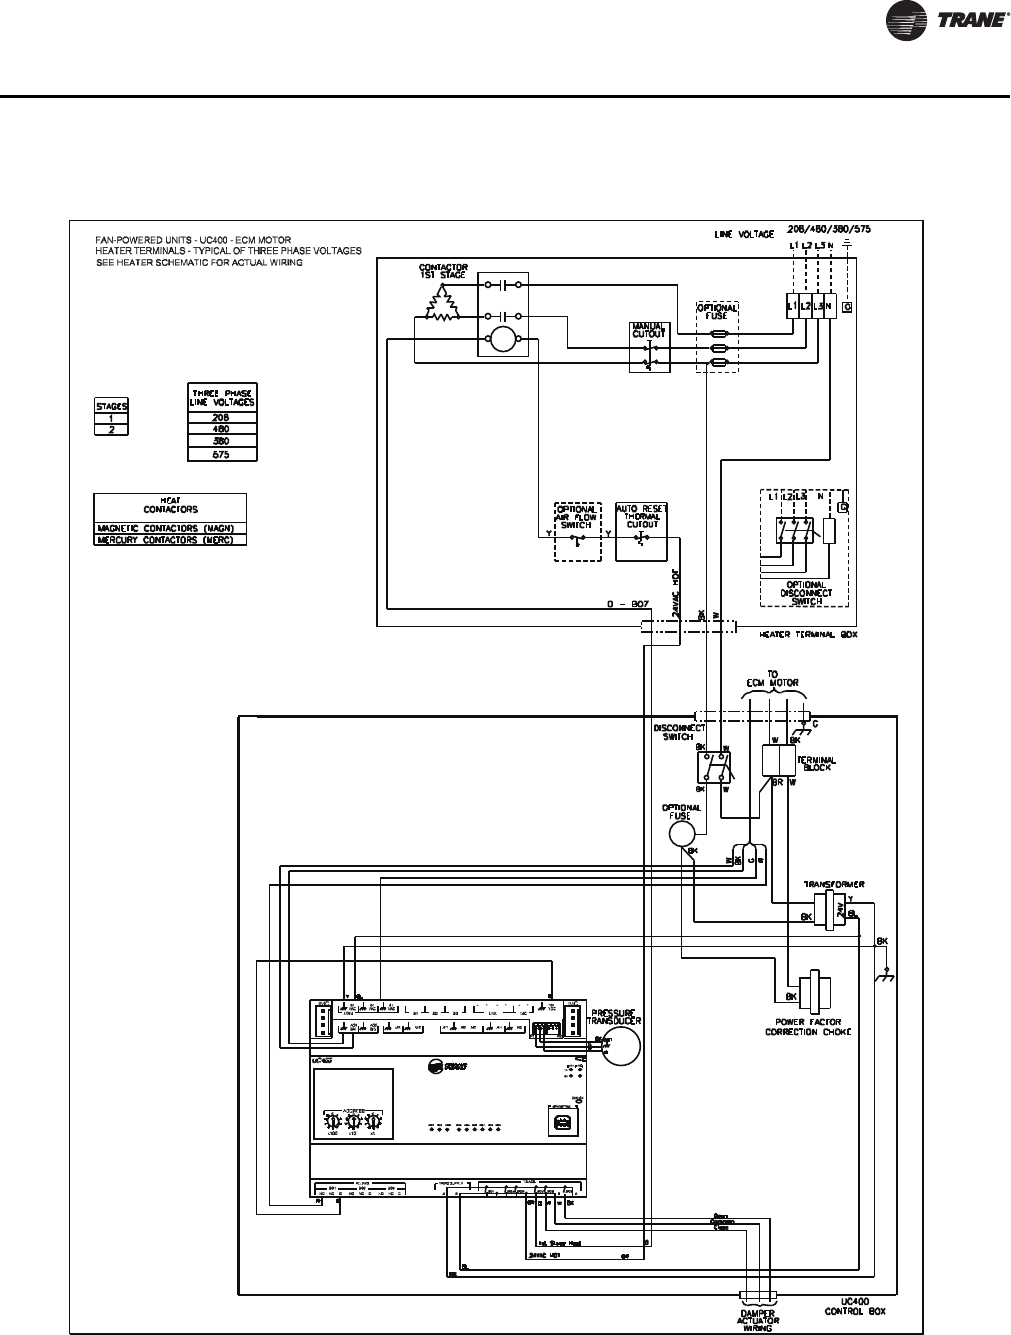 Trane Vav Wiring Diagram Best 2018. Trane Ycd Wiring Diagram Unique Enchanting Air Handler. Wiring. Trane Ycd Wiring Diagrams At Scoala.co